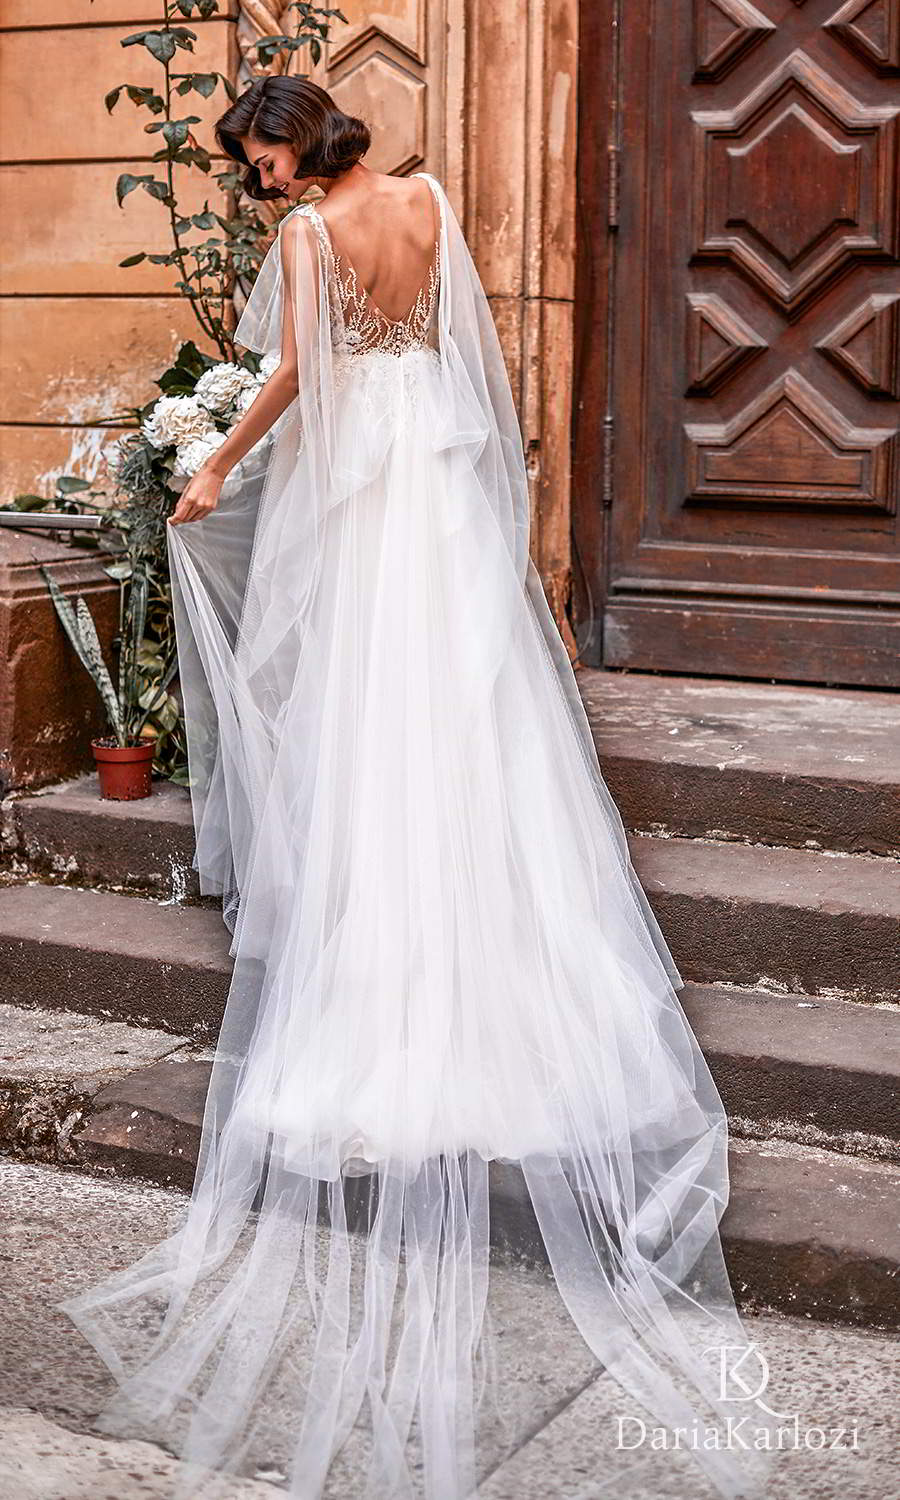 daria karlozi 2021 graceful dream bridal sleeveless straps plunging v neckline heavily embellished bodice a line ball gown wedding dress sweep train v back (euphoria) bv